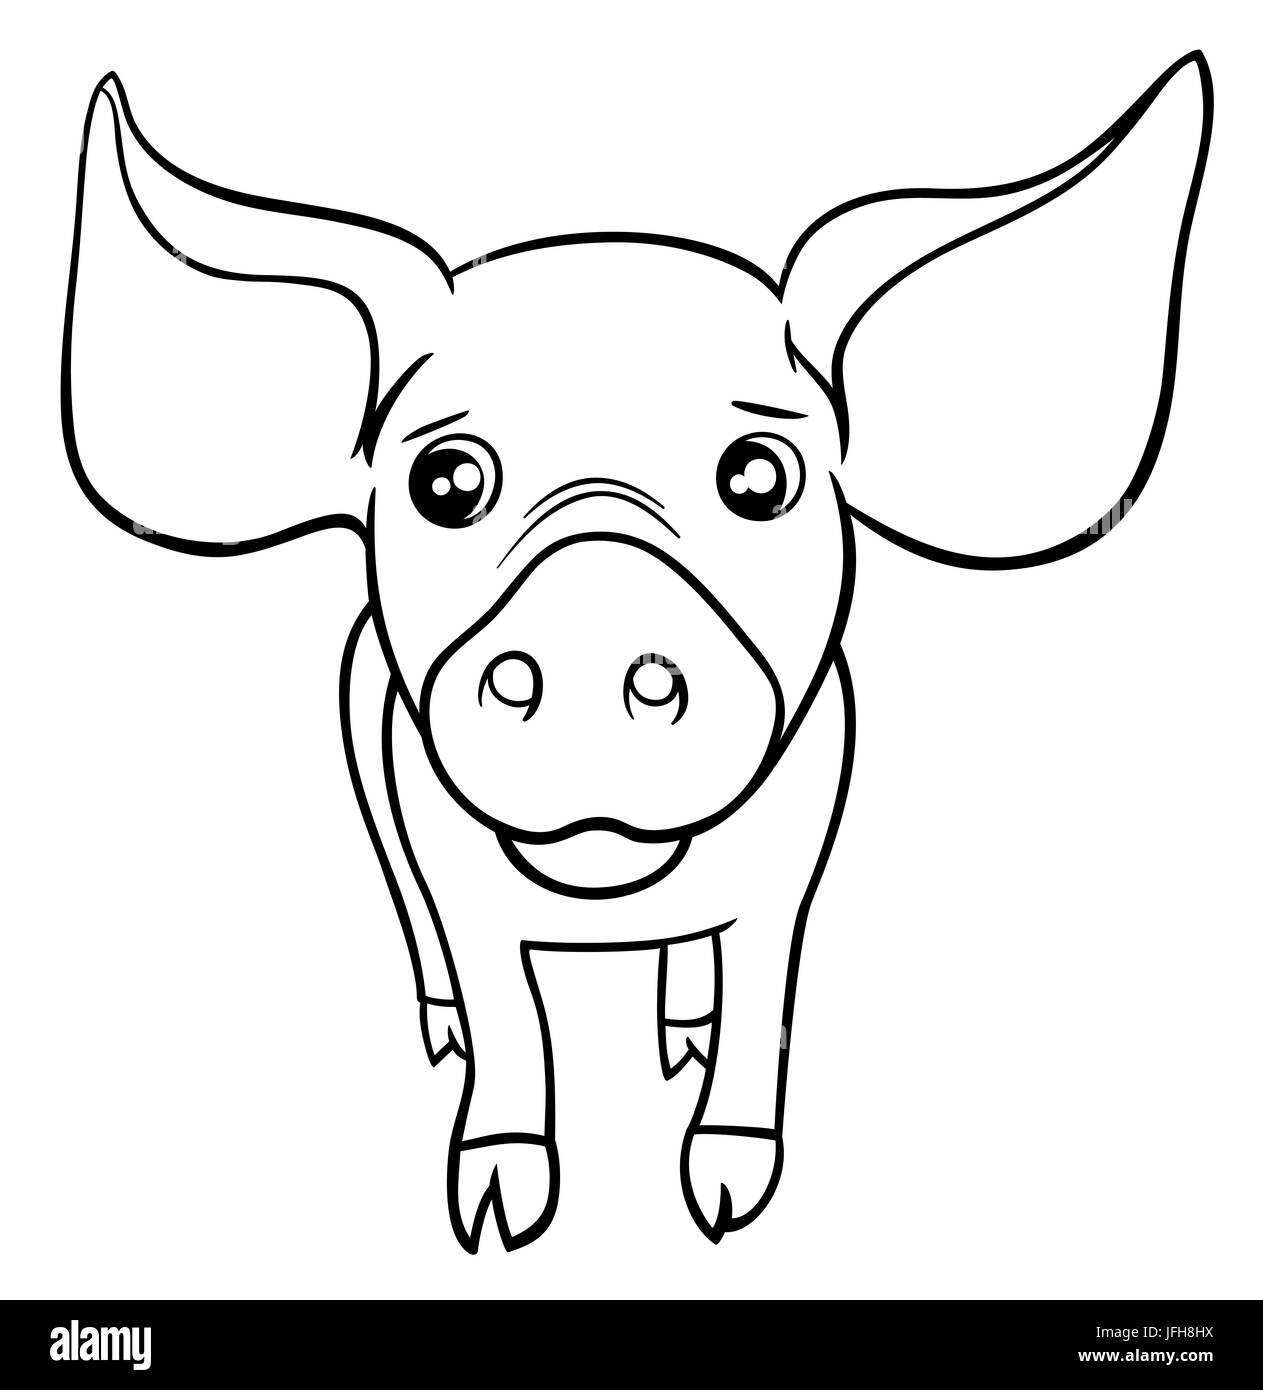 pig or piglet coloring page Stock Photo: 147282742 - Alamy